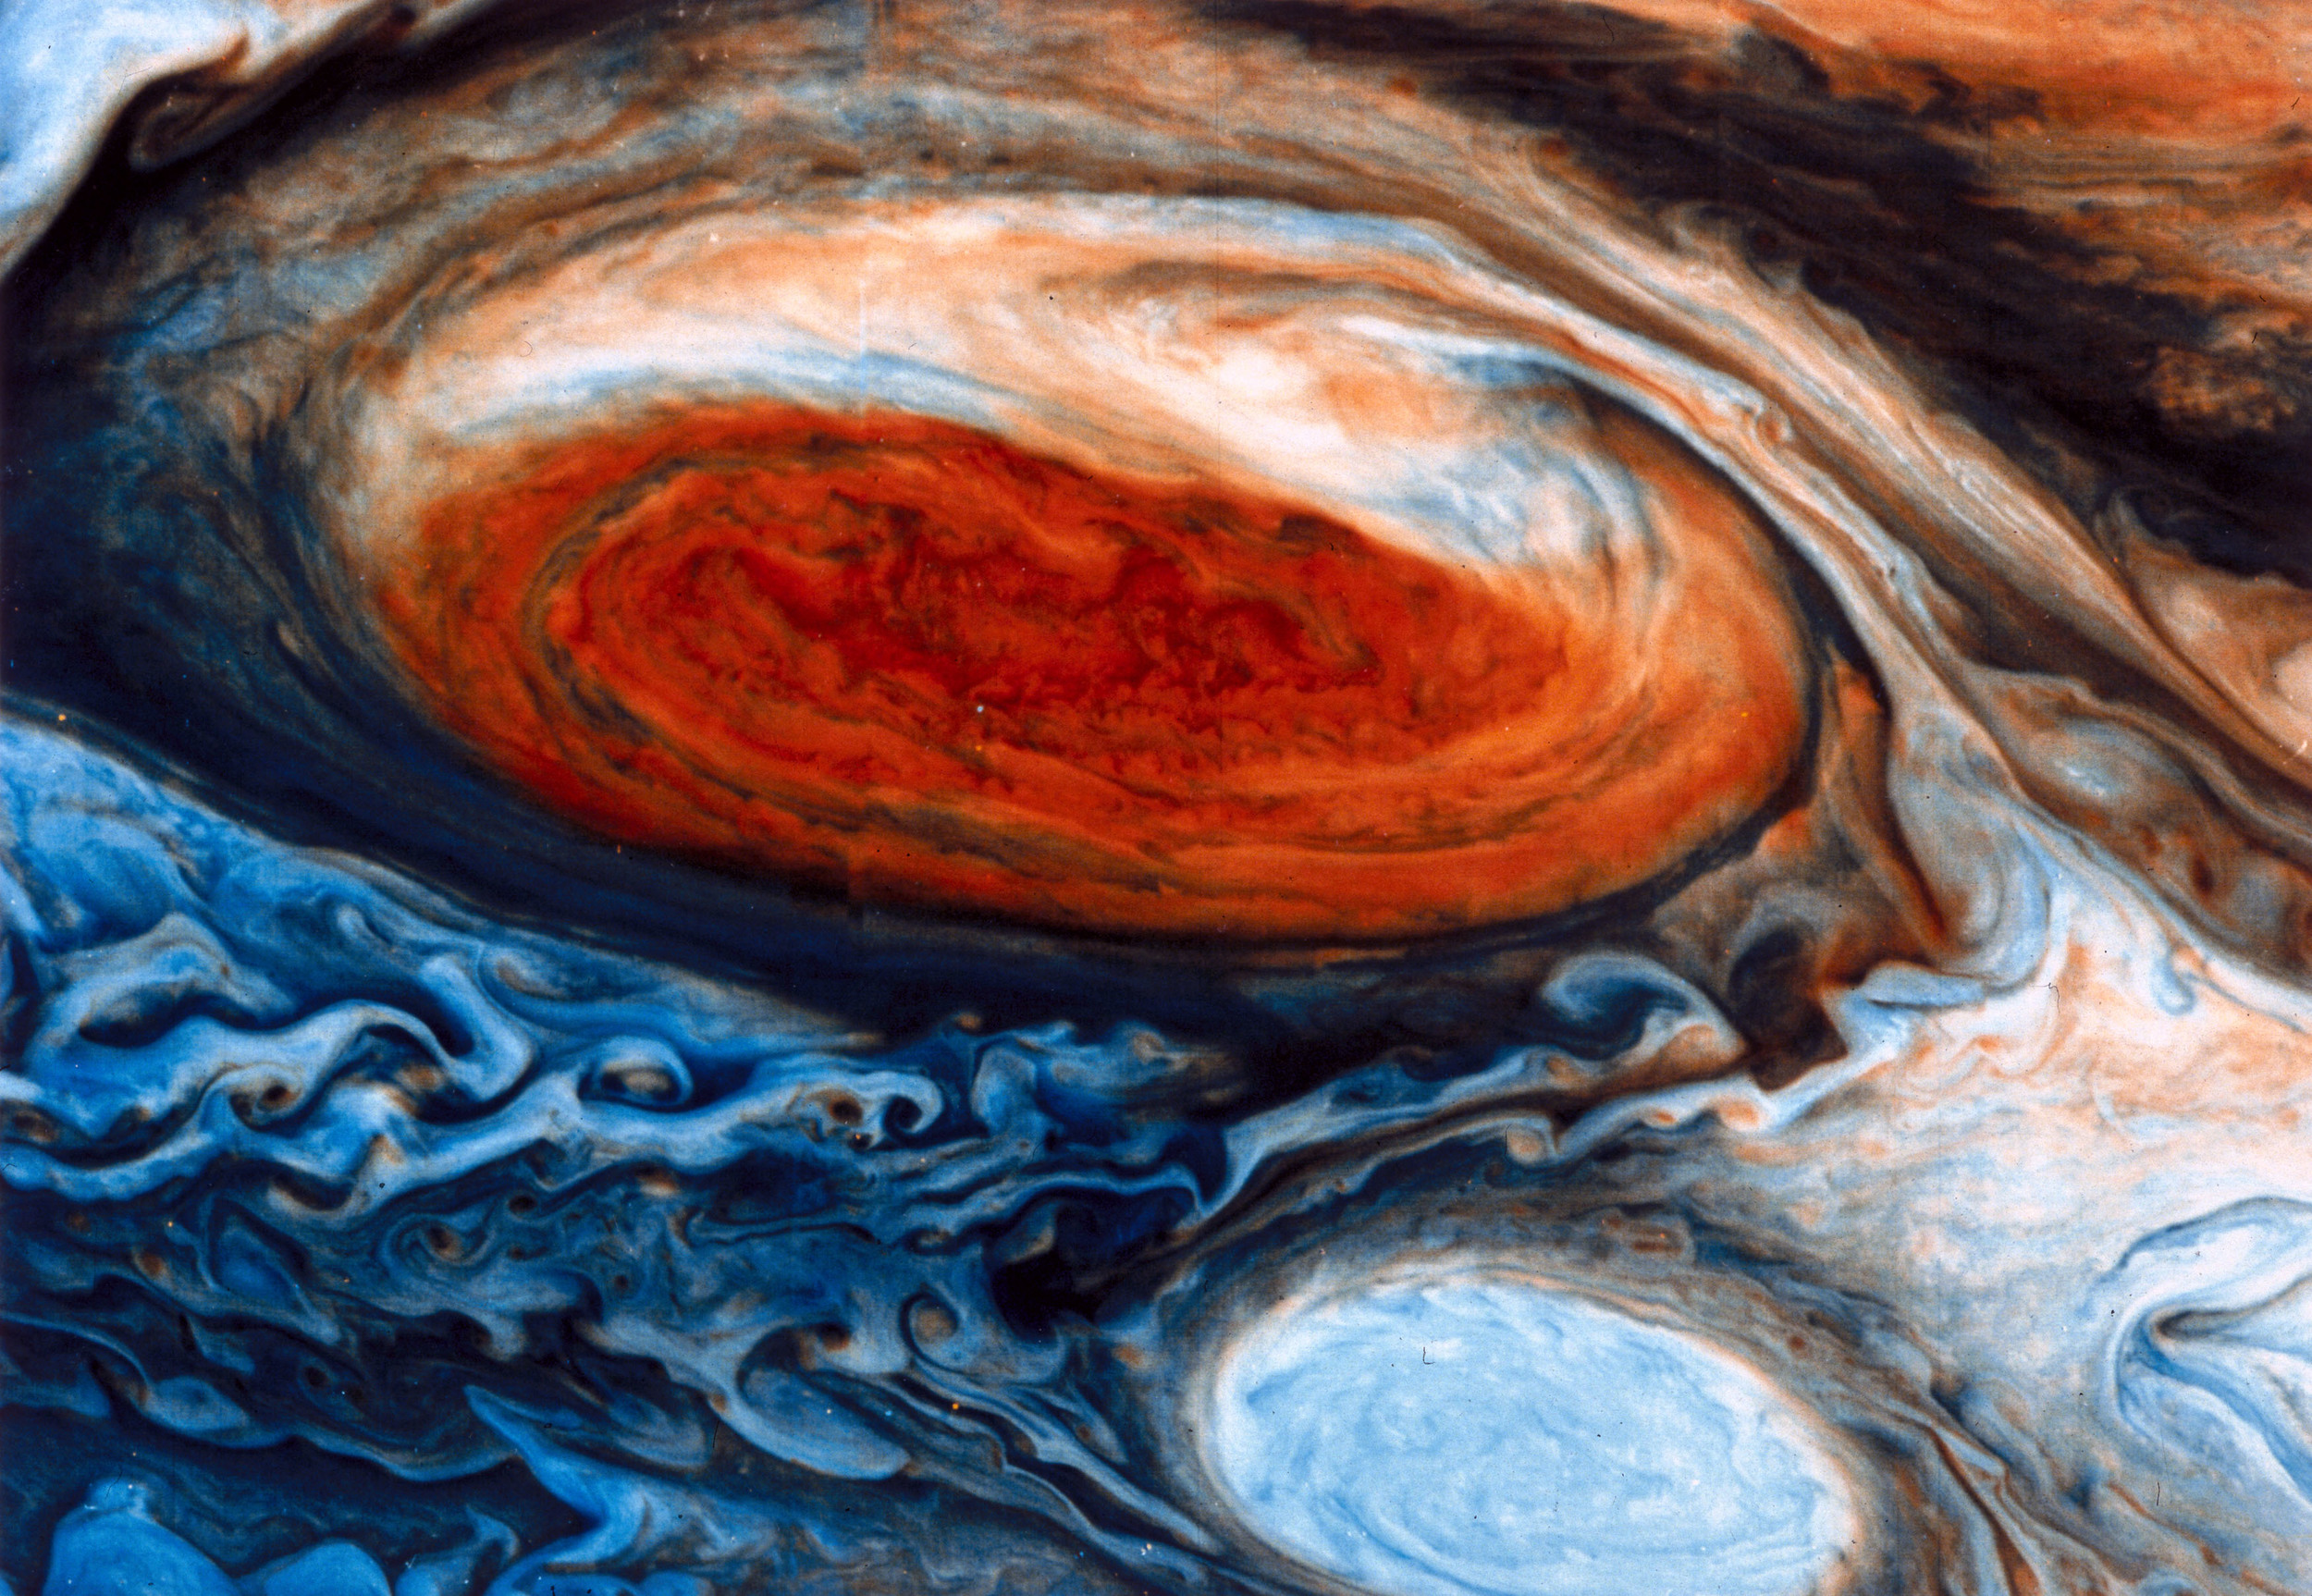 planet jupiter great red spot - photo #10